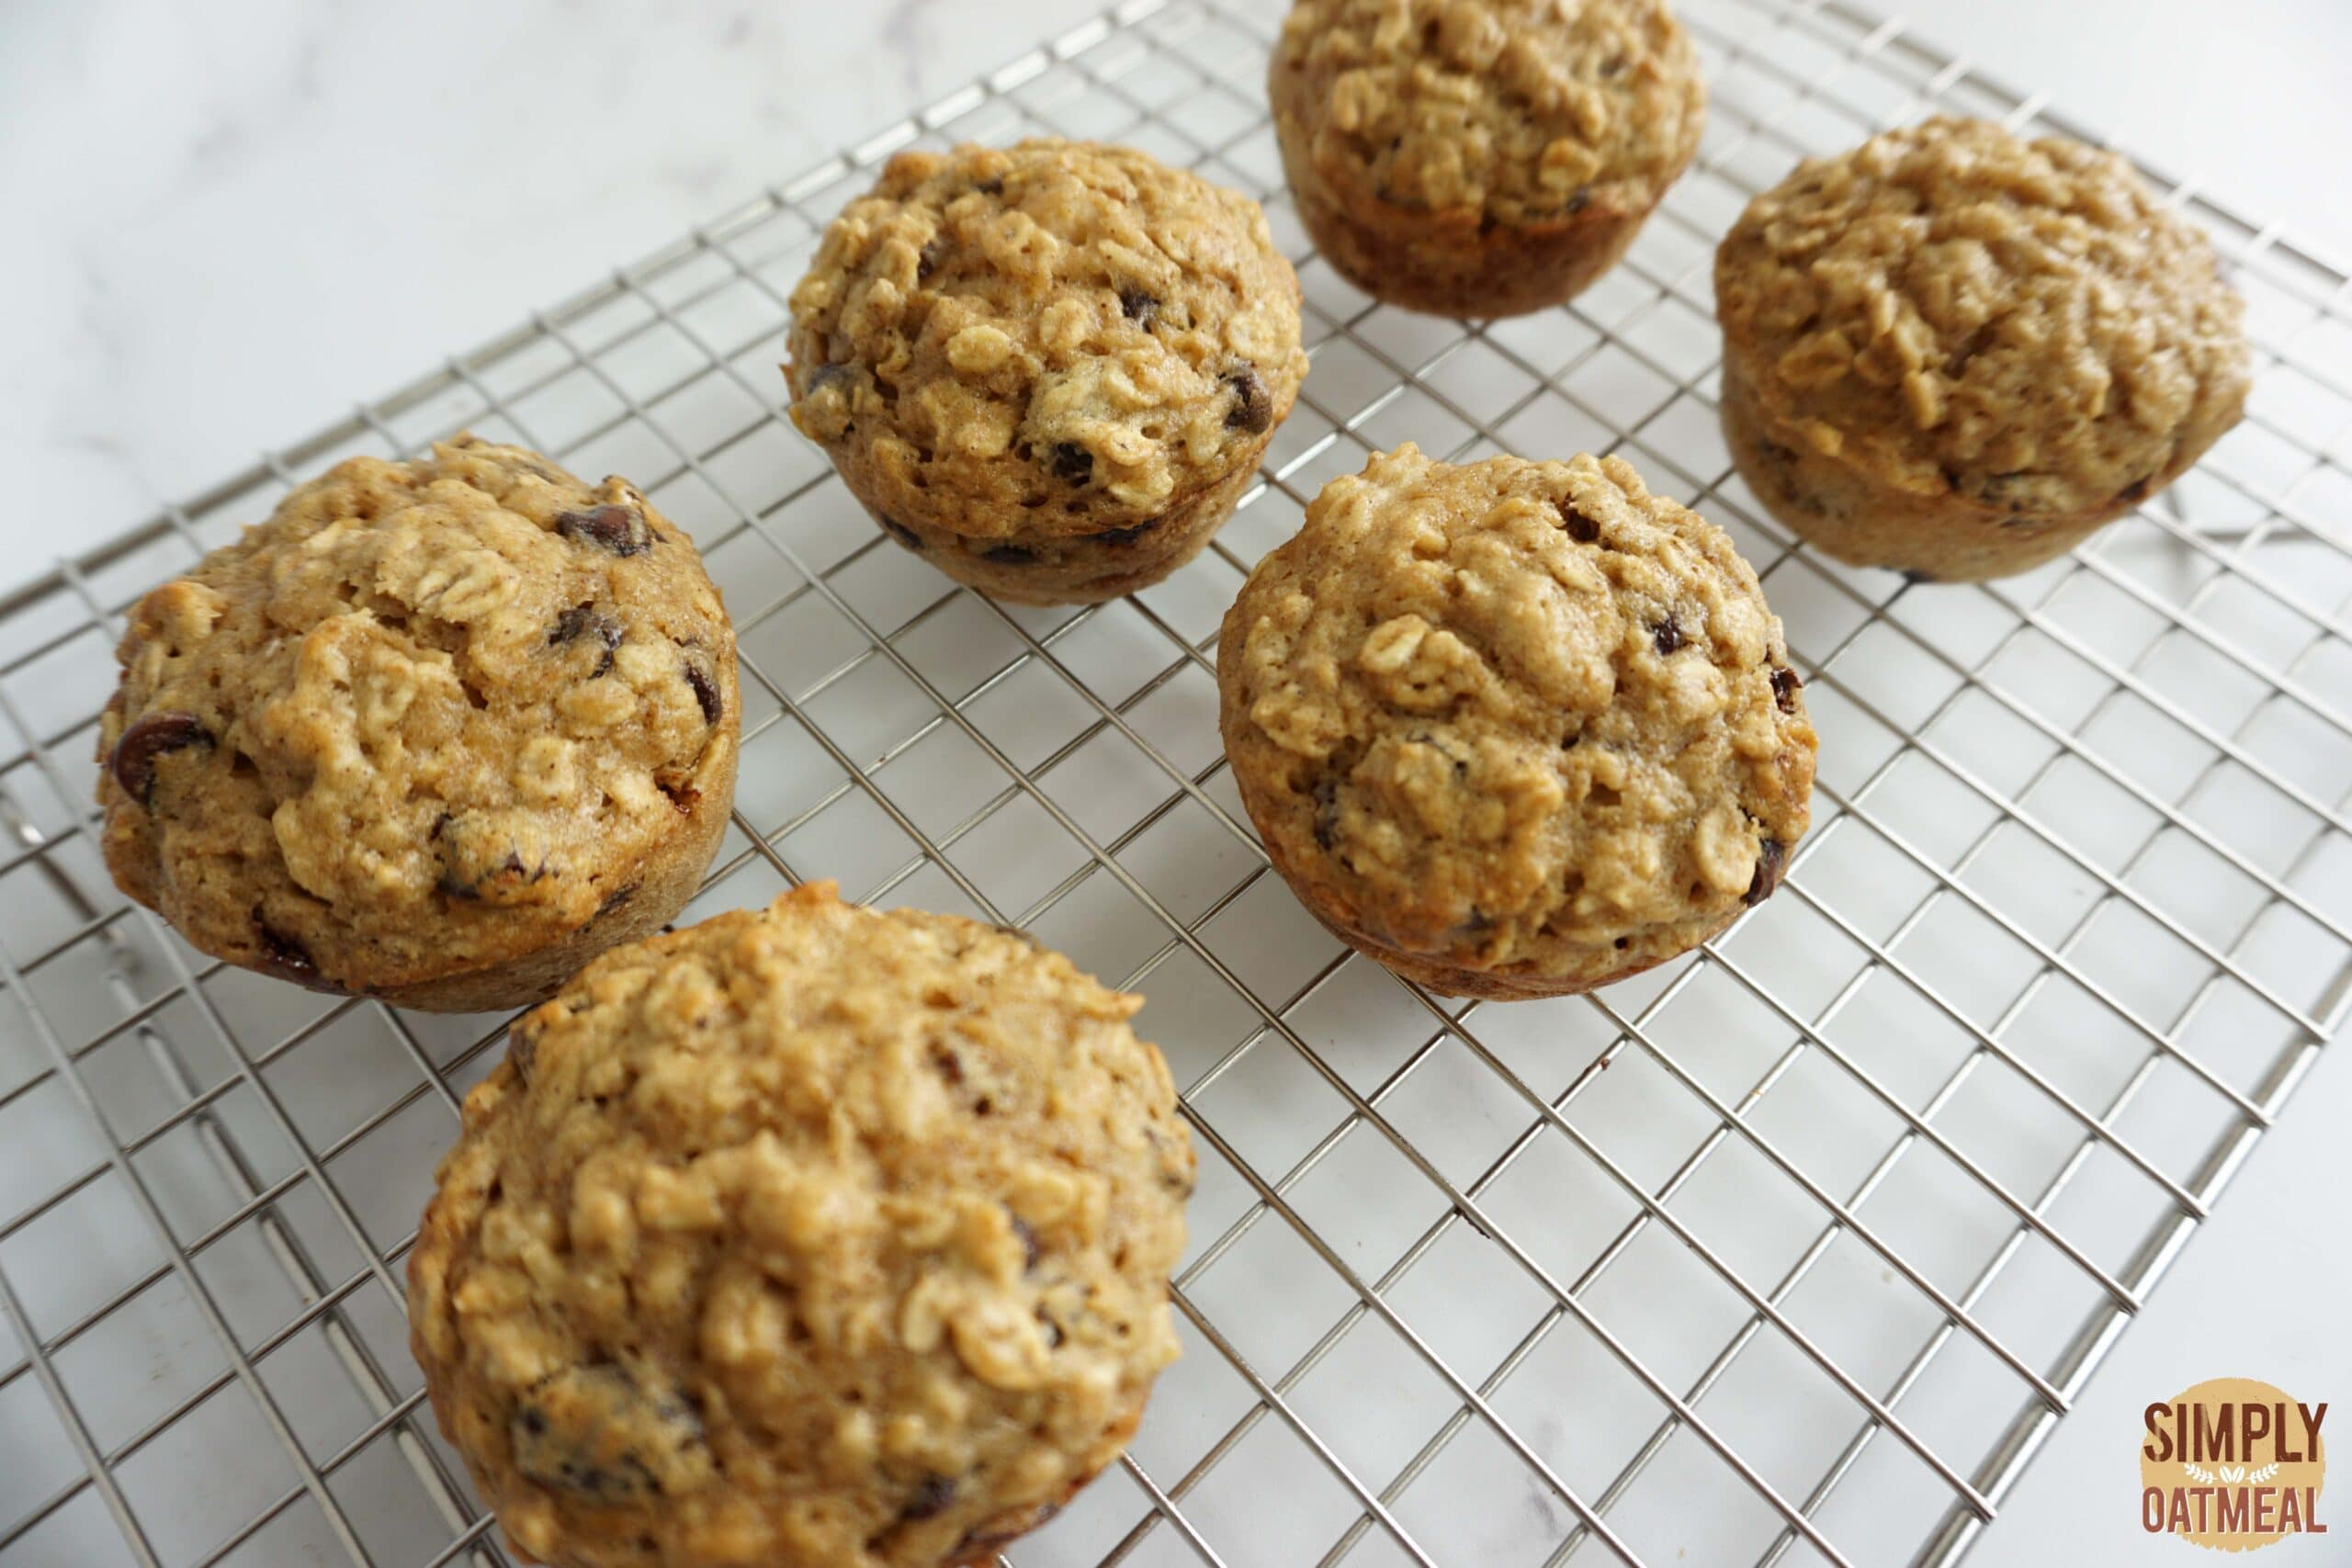 Applesauce oatmeal muffins cooling on a wire rack